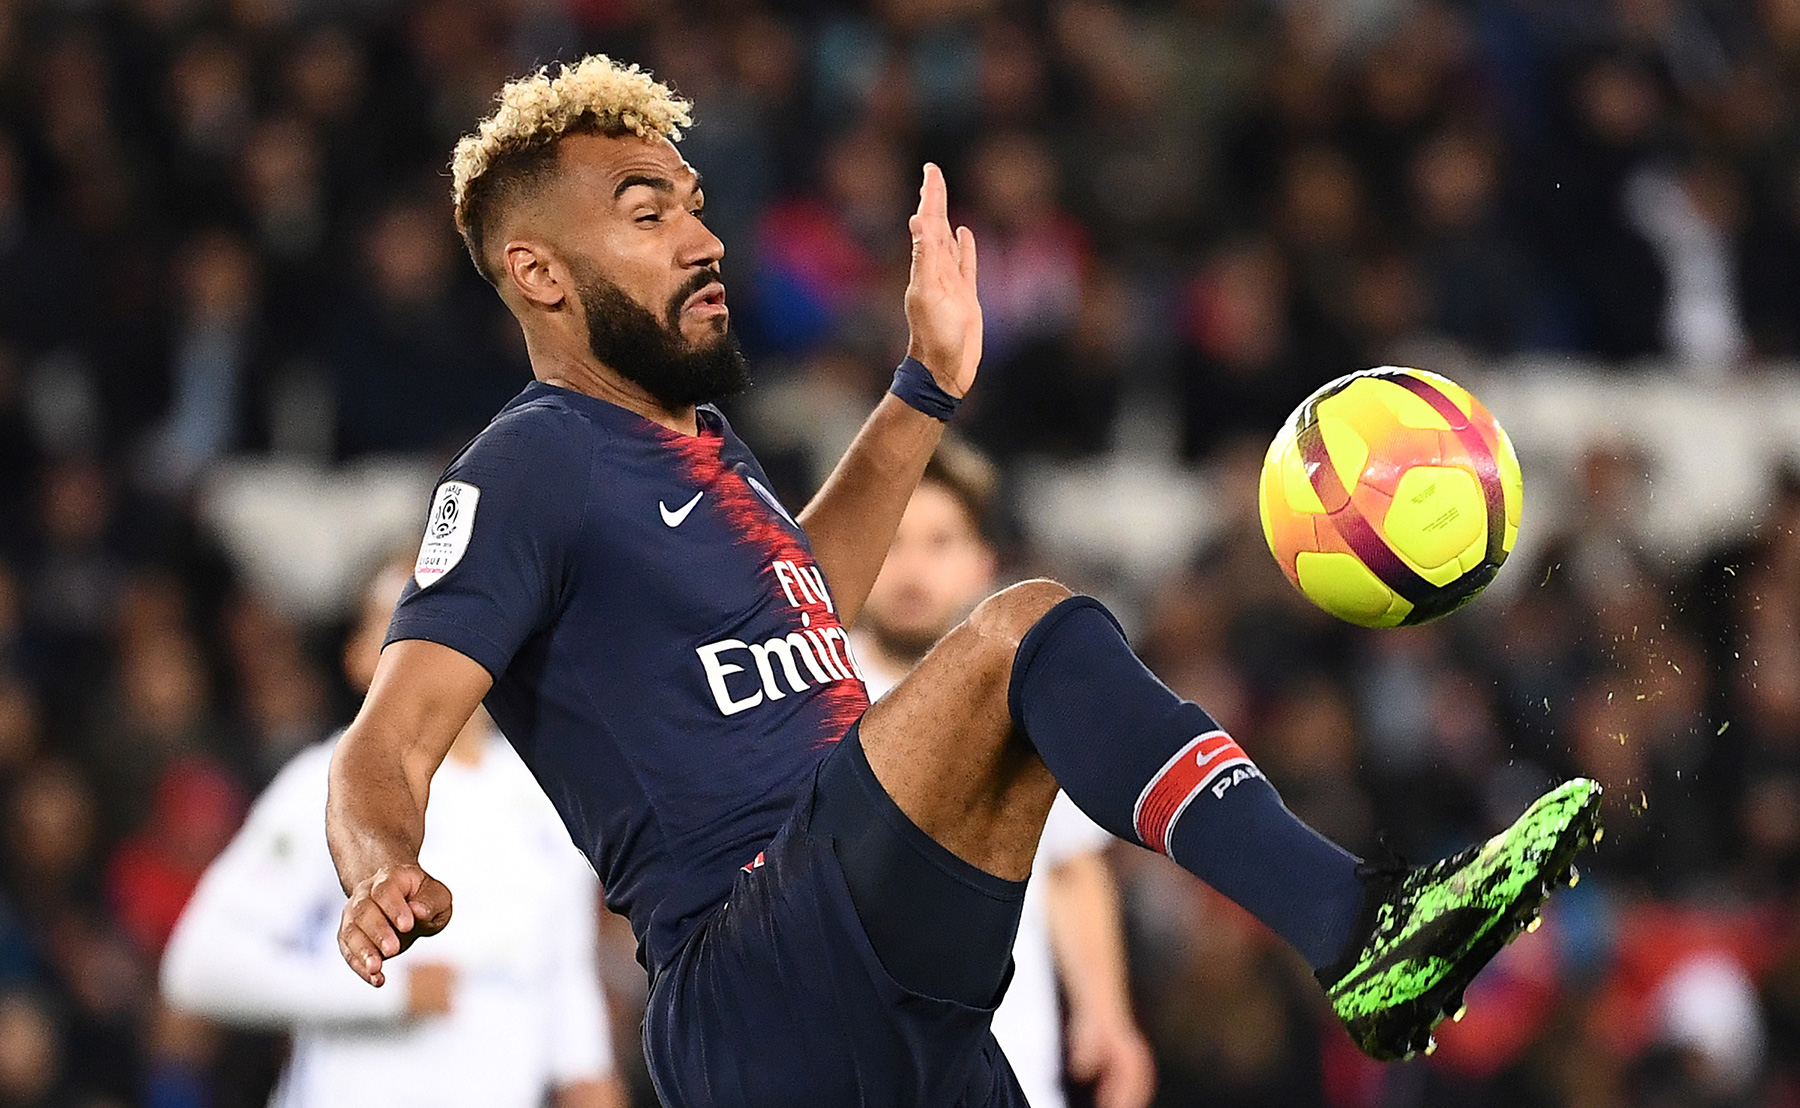 PSG Small Talk Podcast Choupo Moting Giveth And Choupo